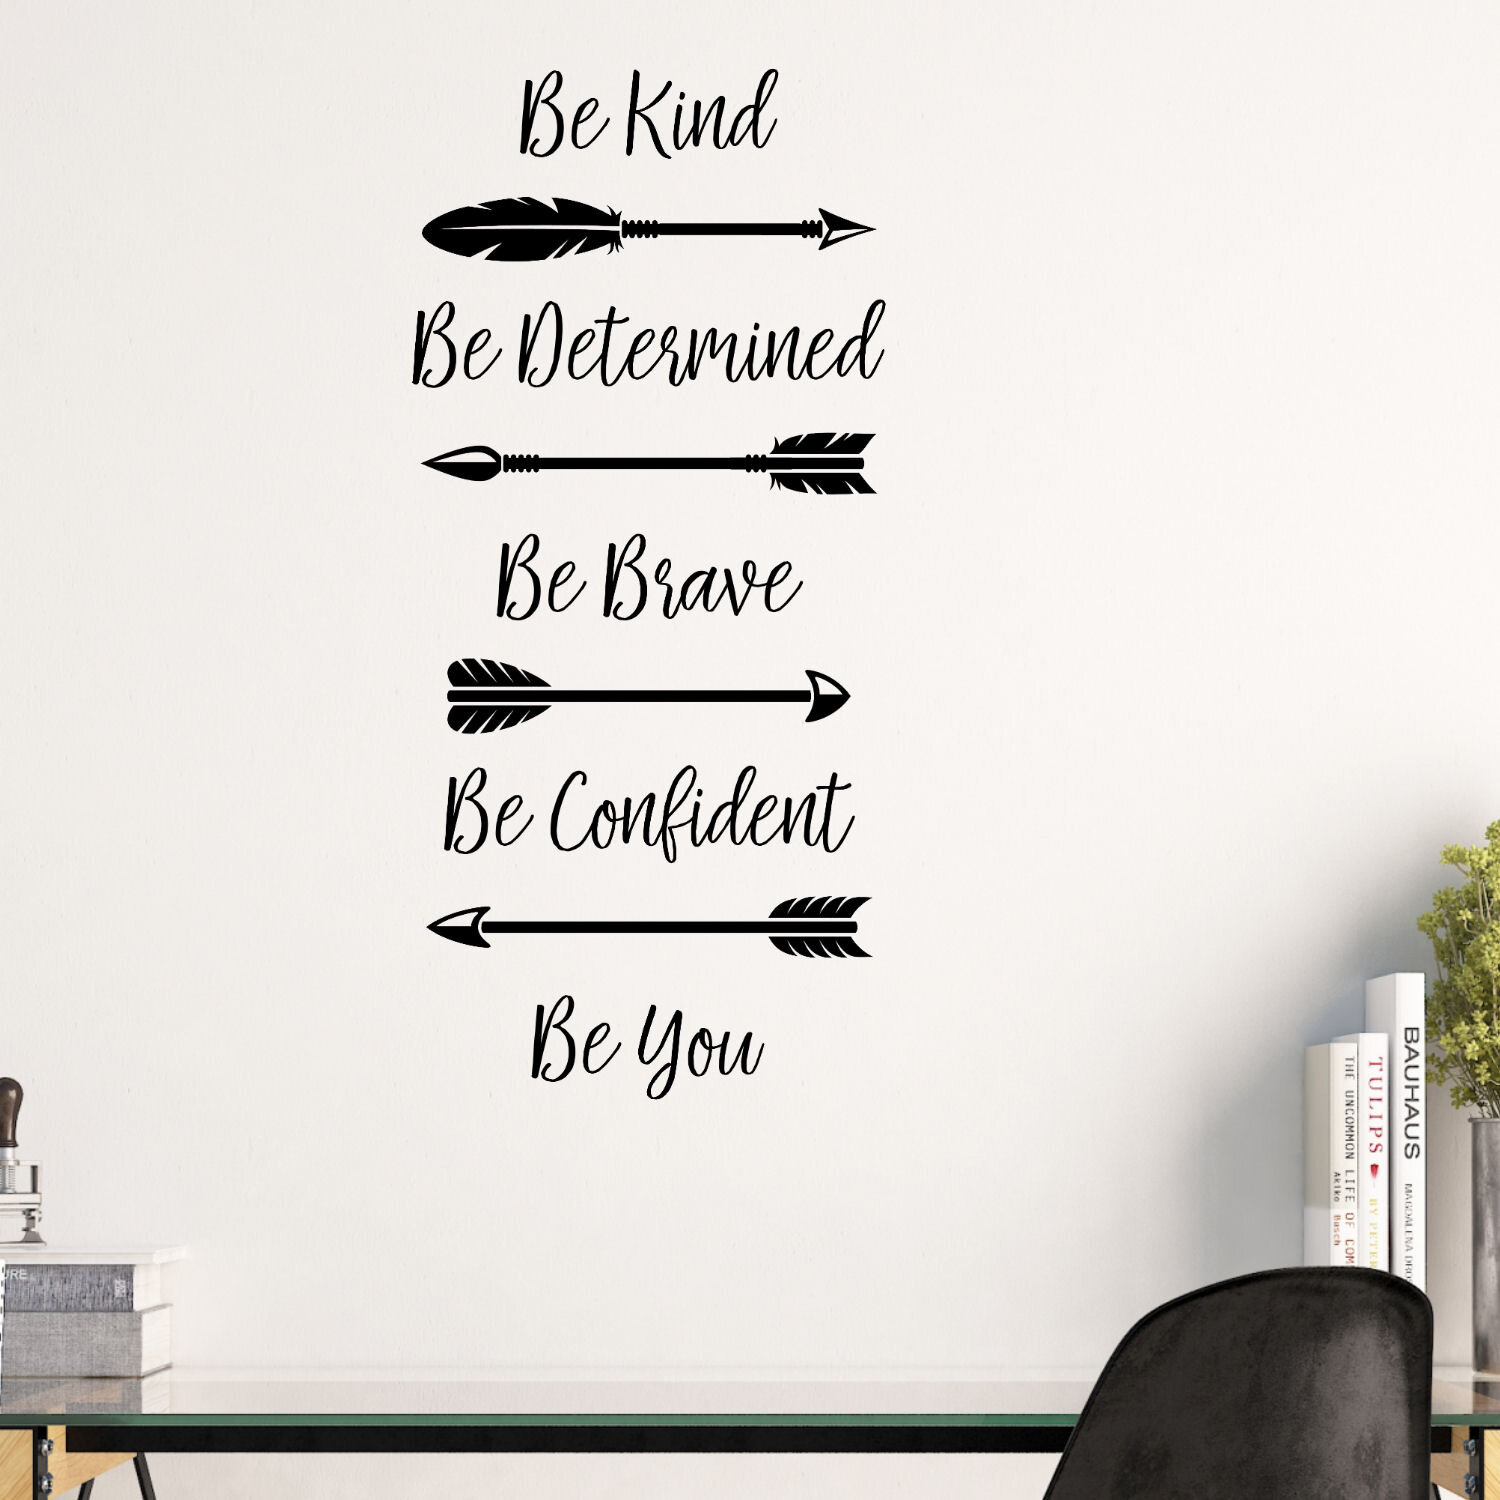 Wayfair Inspirational Wall Decals You Ll Love In 2021